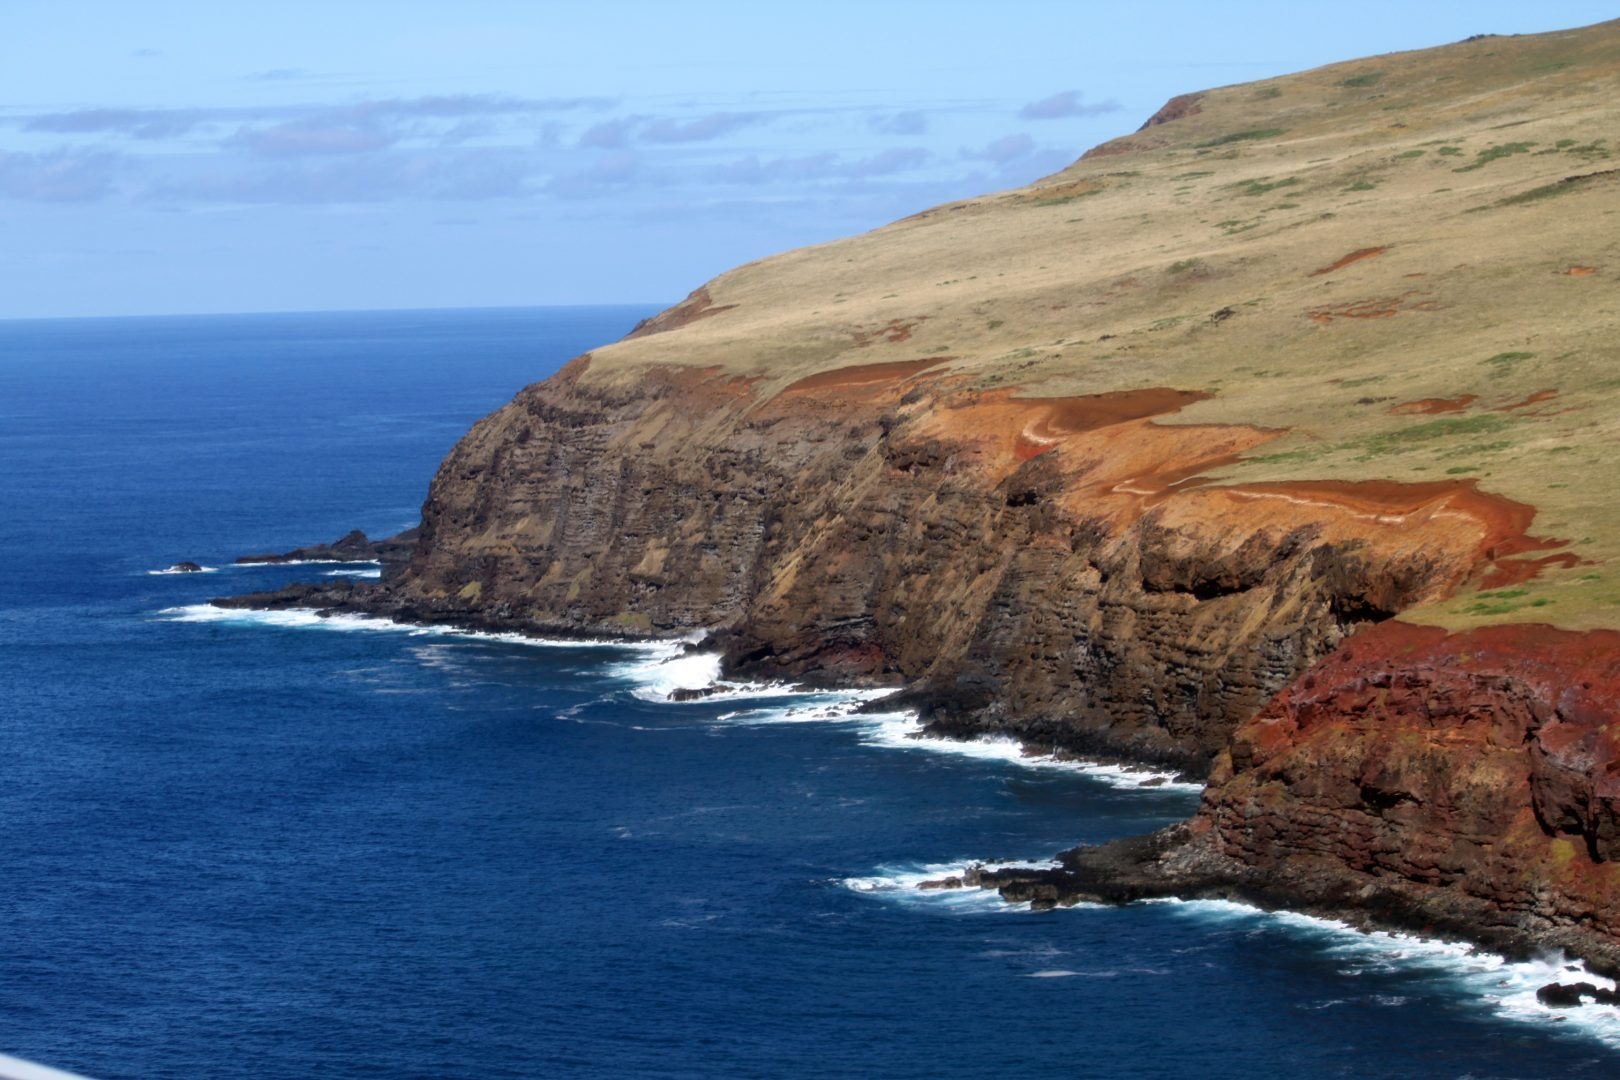 The cliffs of Rapa Nui